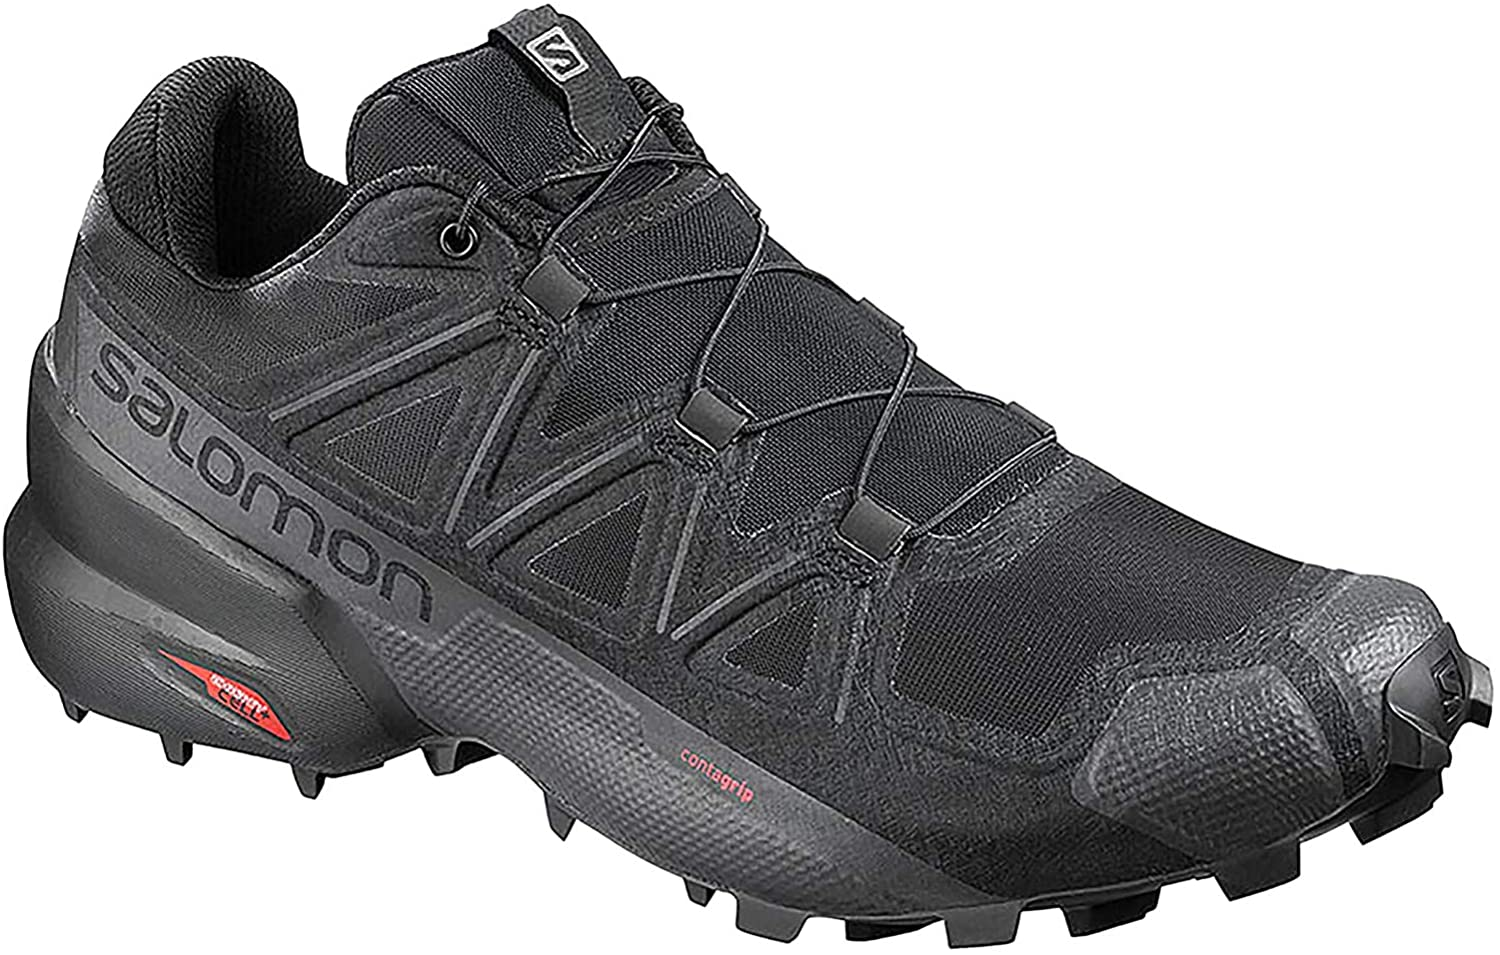 Salomon Women's Speedcross 5 Wide W Trail Running